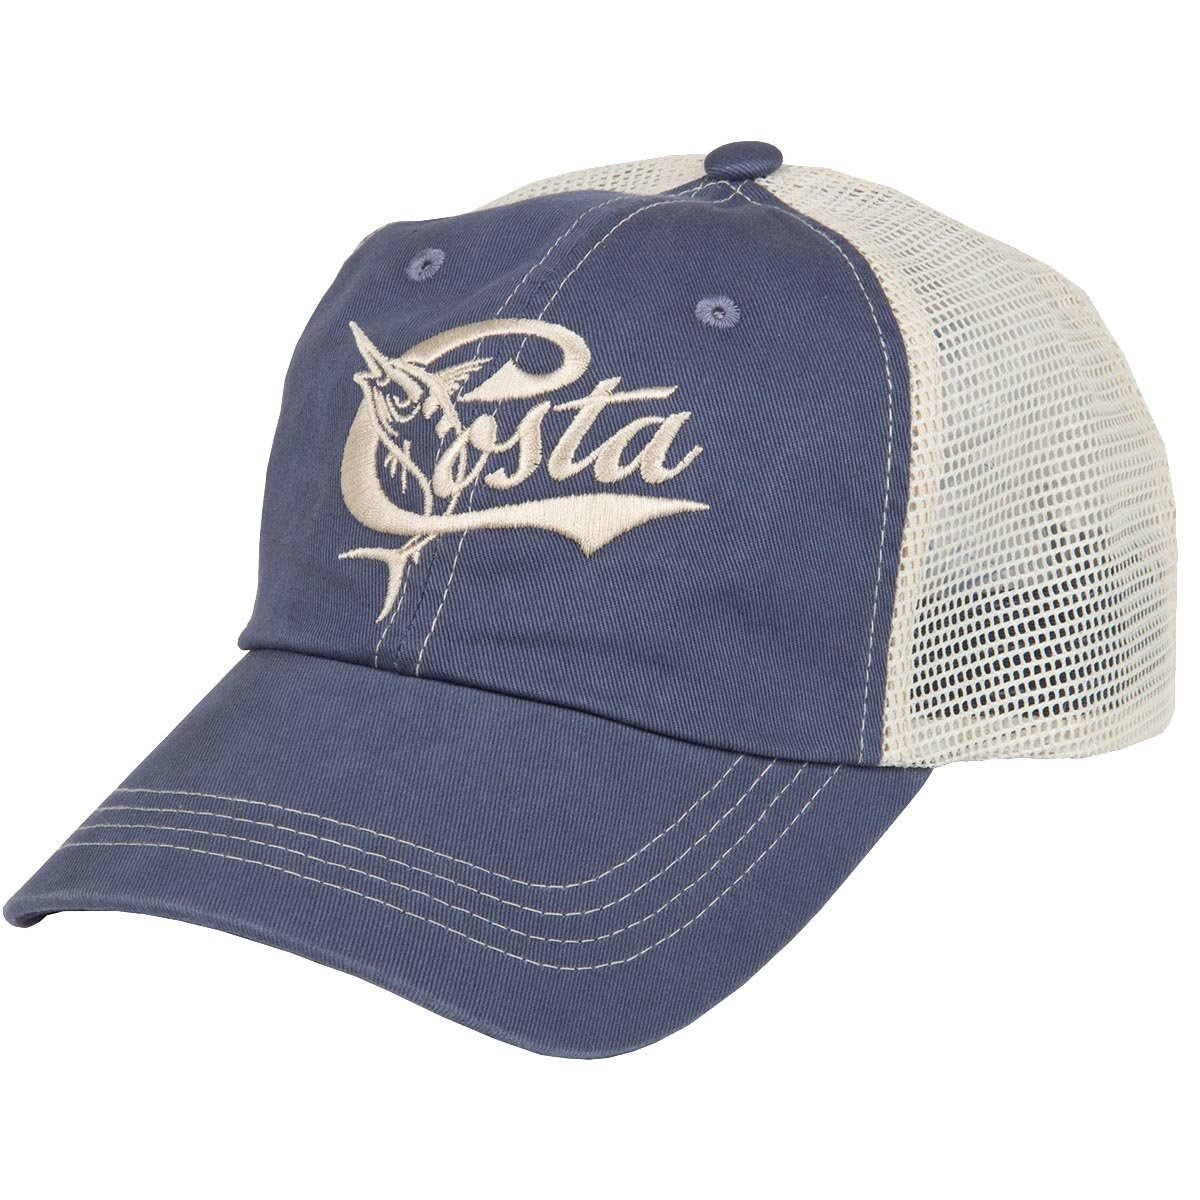 2a0d1b76644 Details about Costa Del Mar Retro Trucker Ball Cap